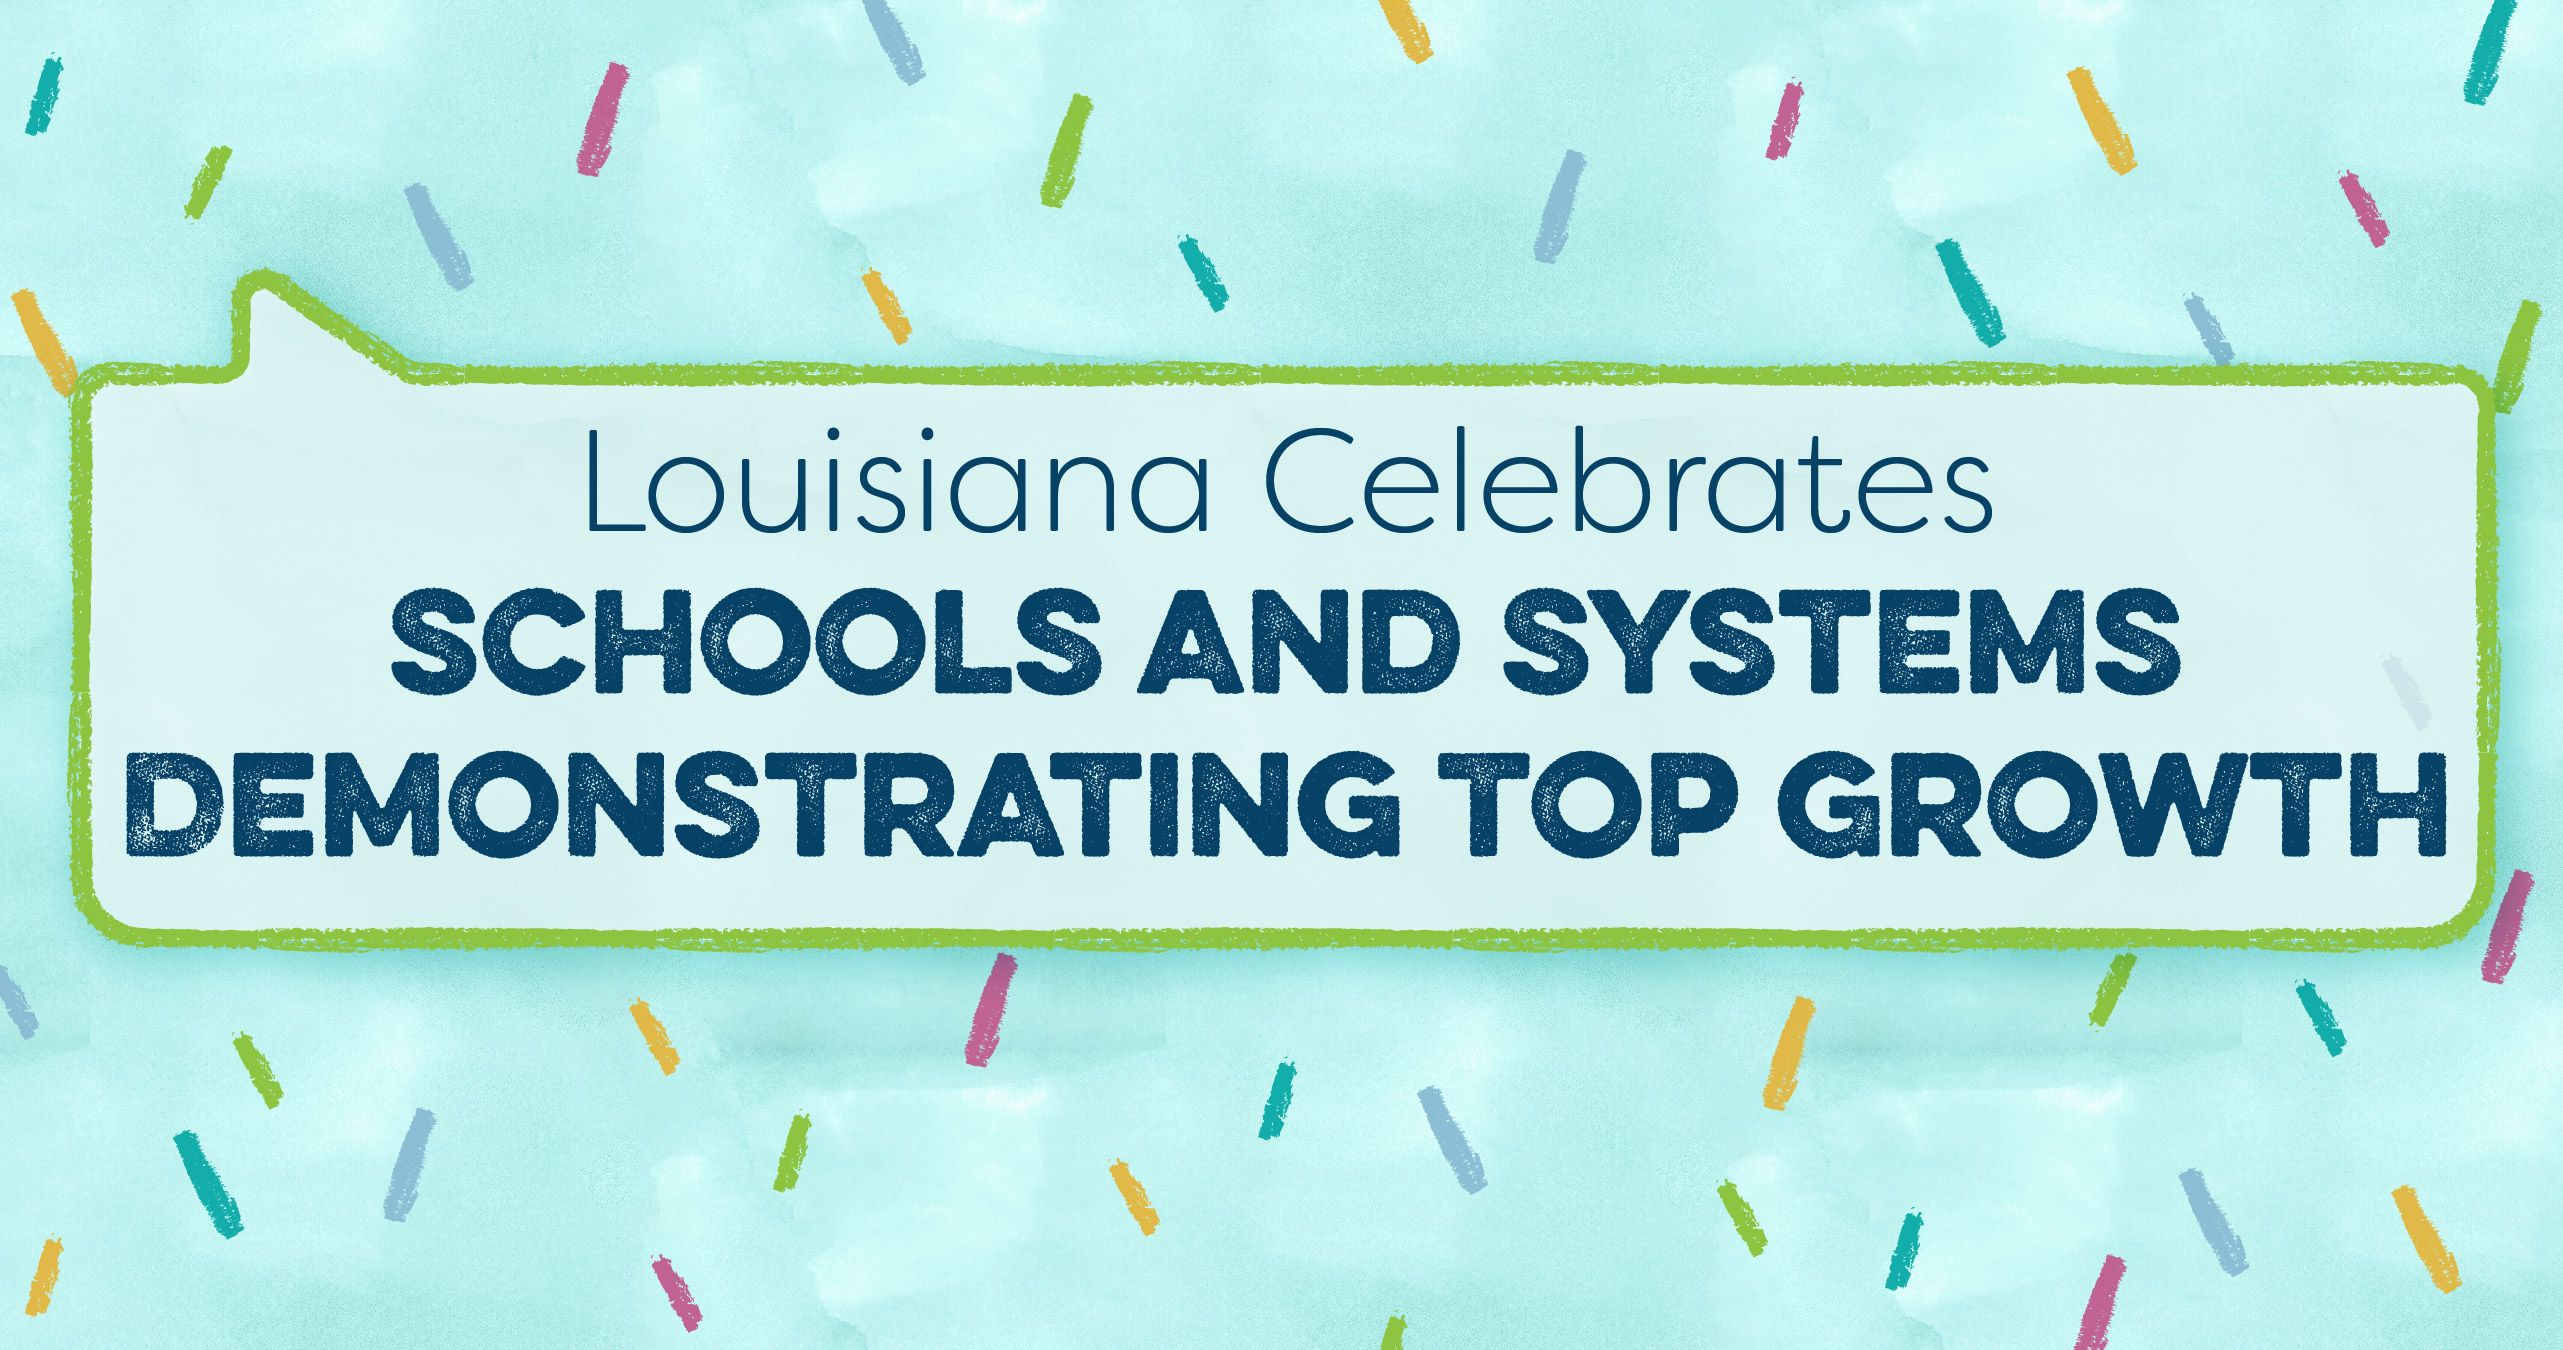 Louisiana Celebrates Schools and Systems Demonstrating Top Growth